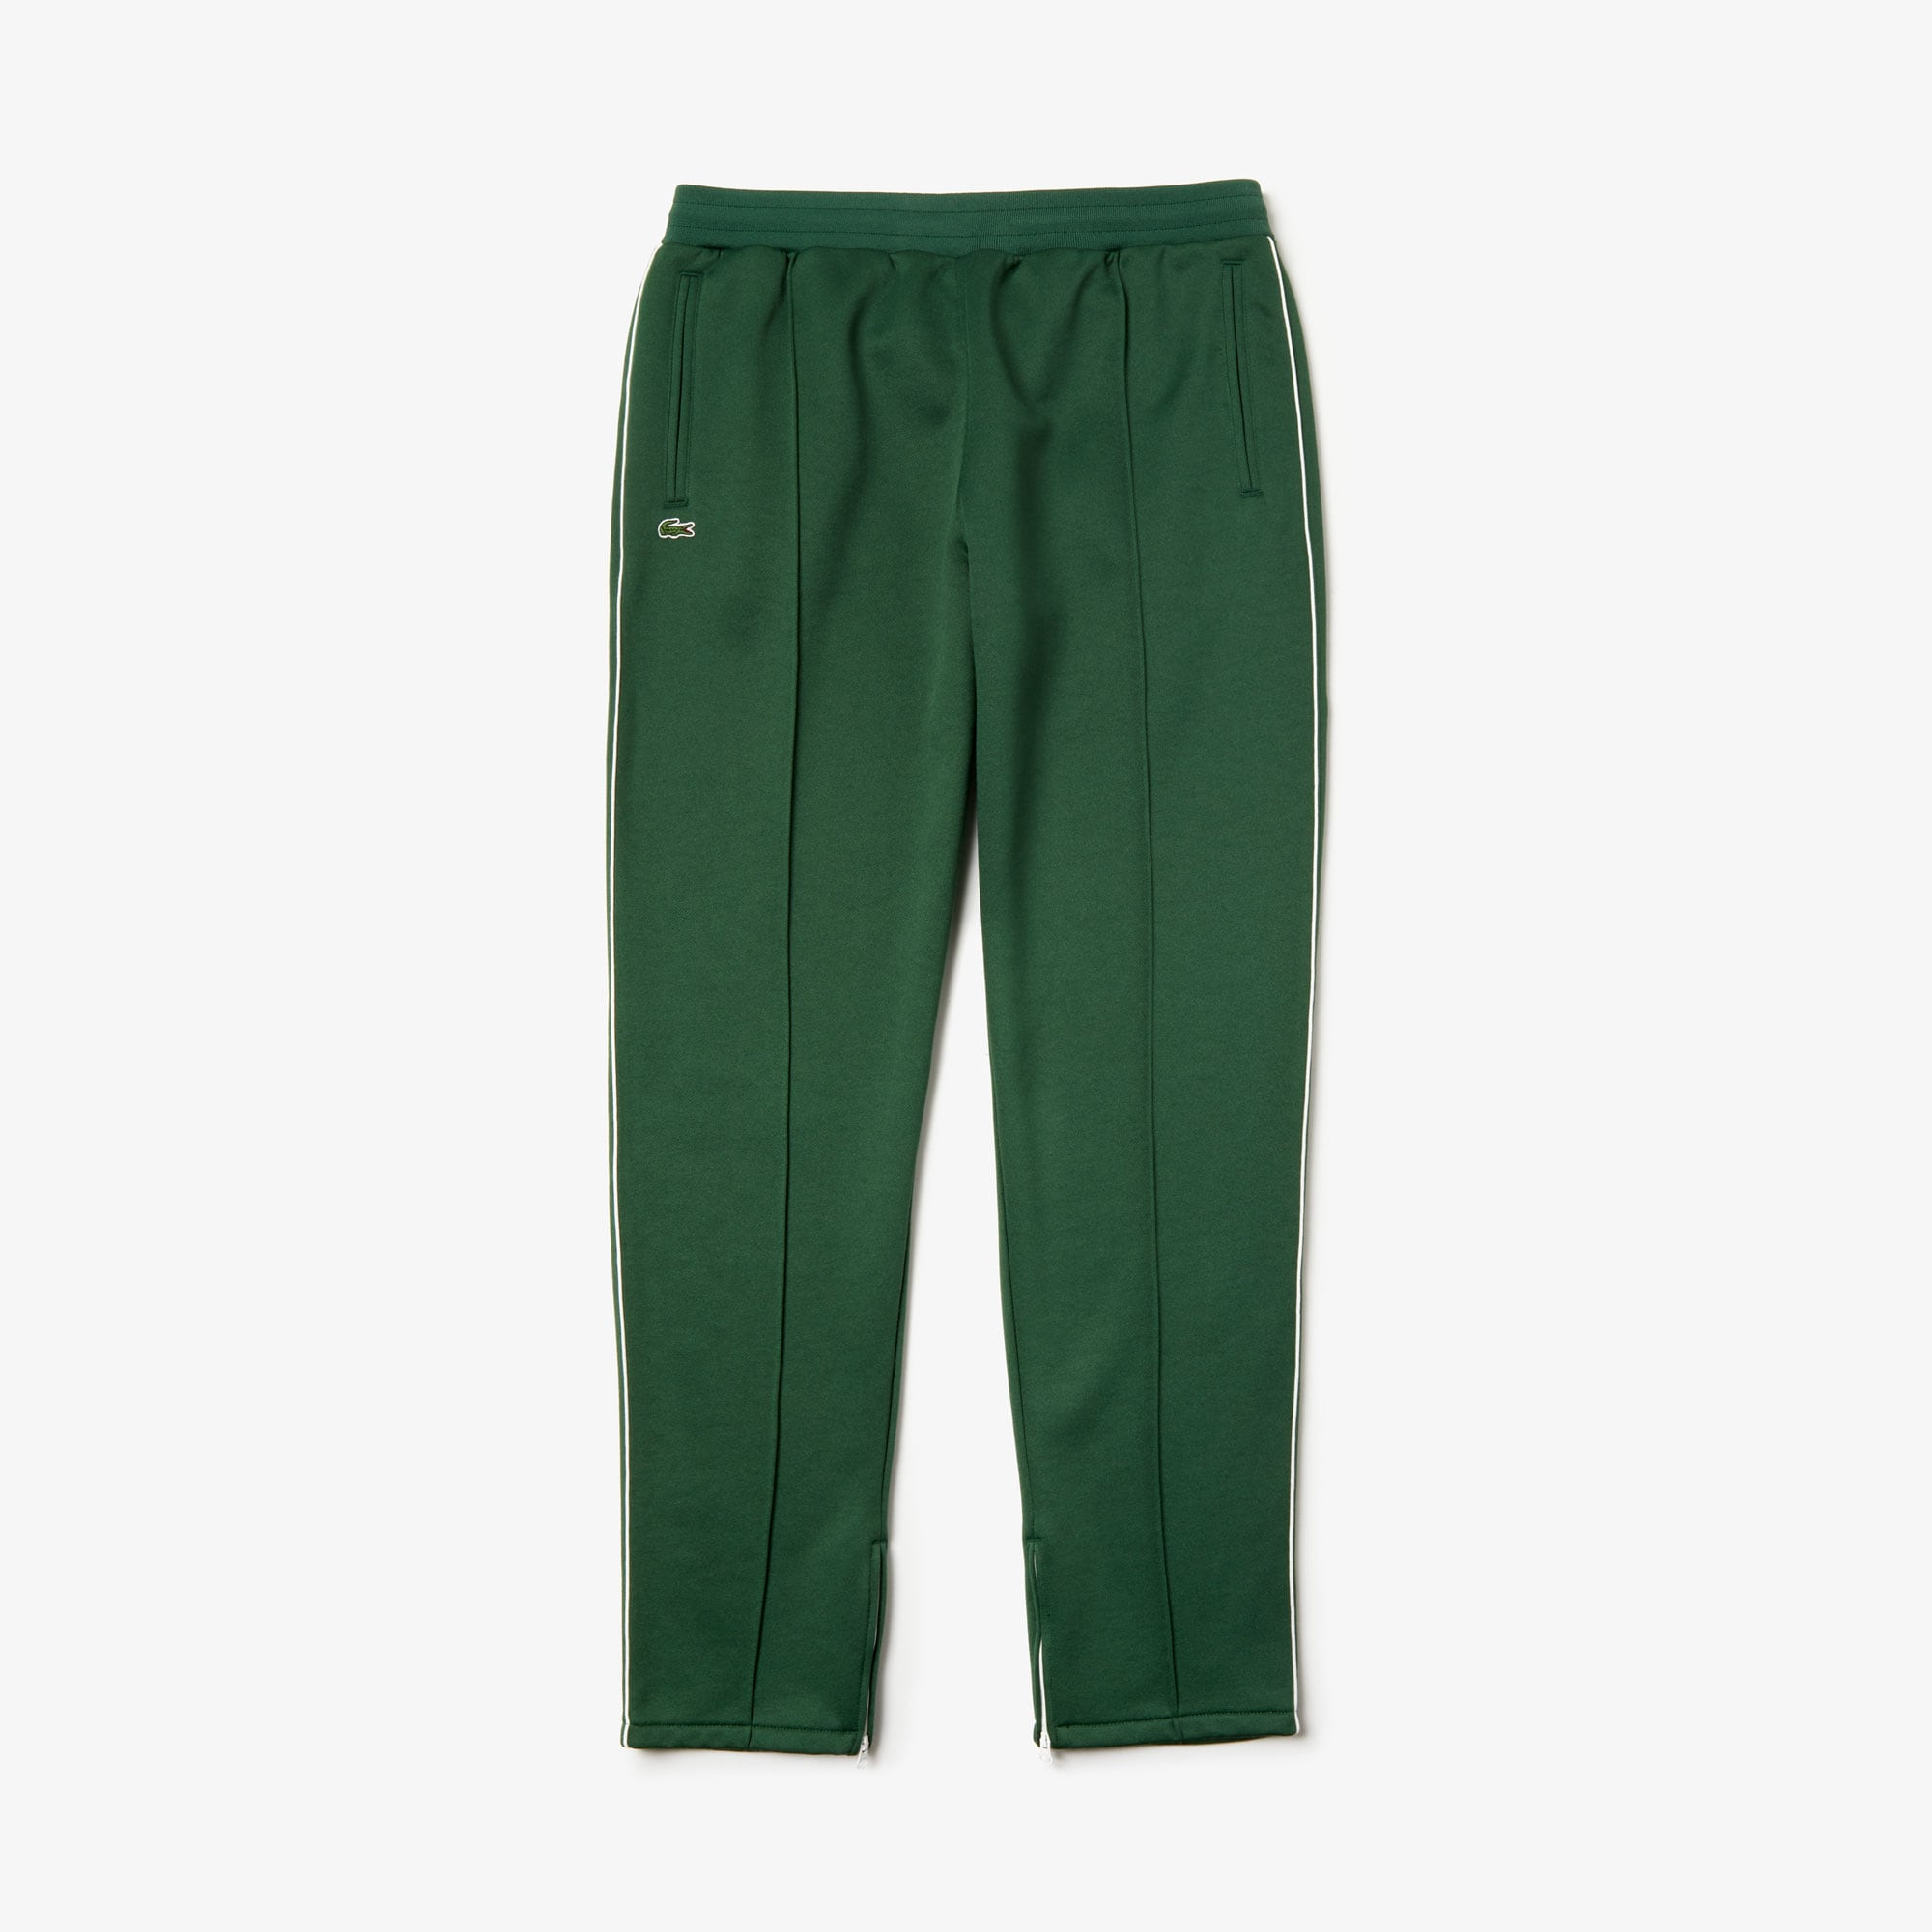 Men's Lacoste LIVE Vintage Sweatpants